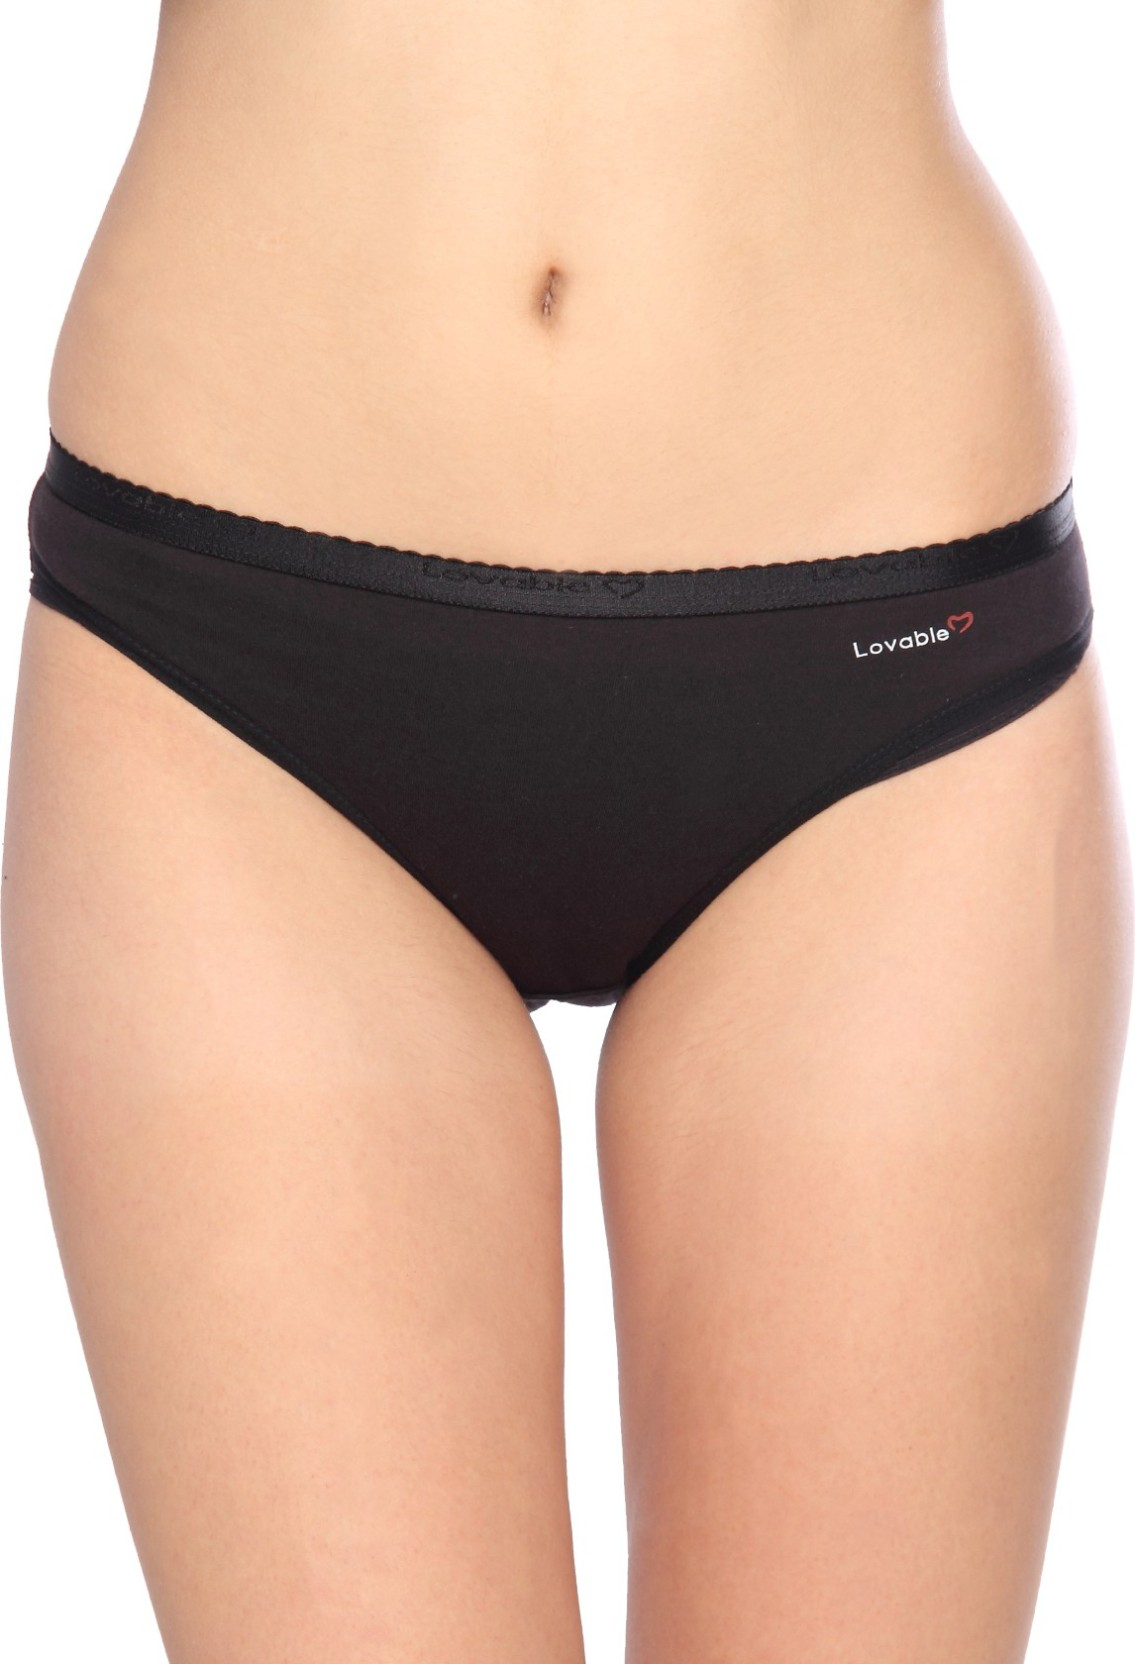 29bc6b90ad81 Lovable Ctn Bikini_black Women's Hipster Black Panty - Buy Assorted ...